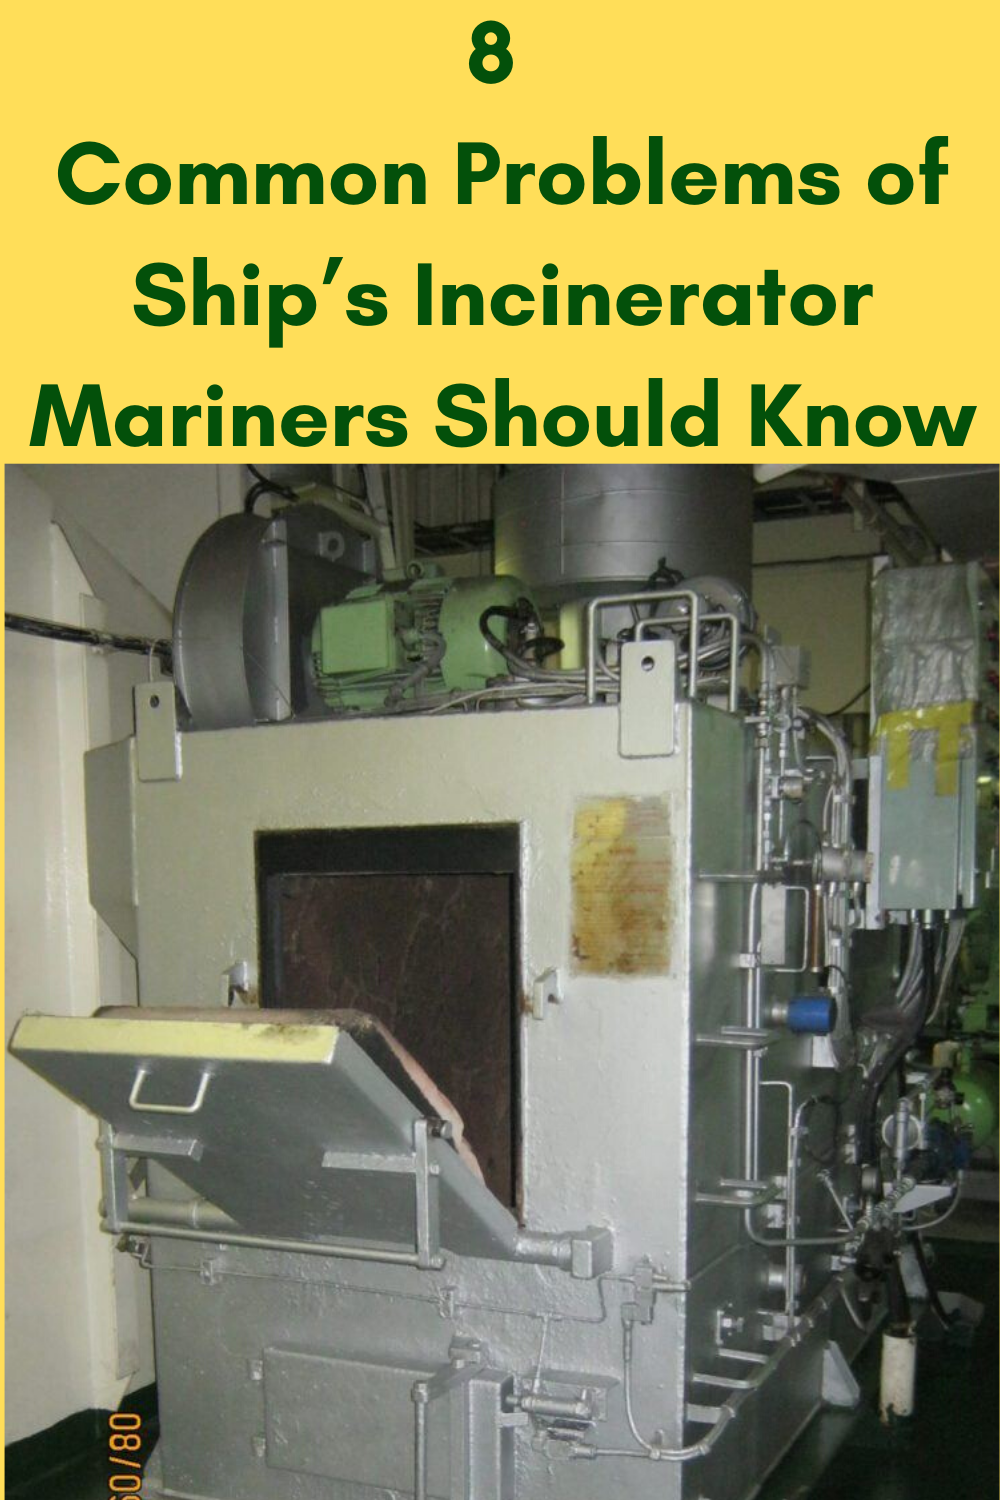 8 Common Problems of Ship's Incinerator Mariners Should